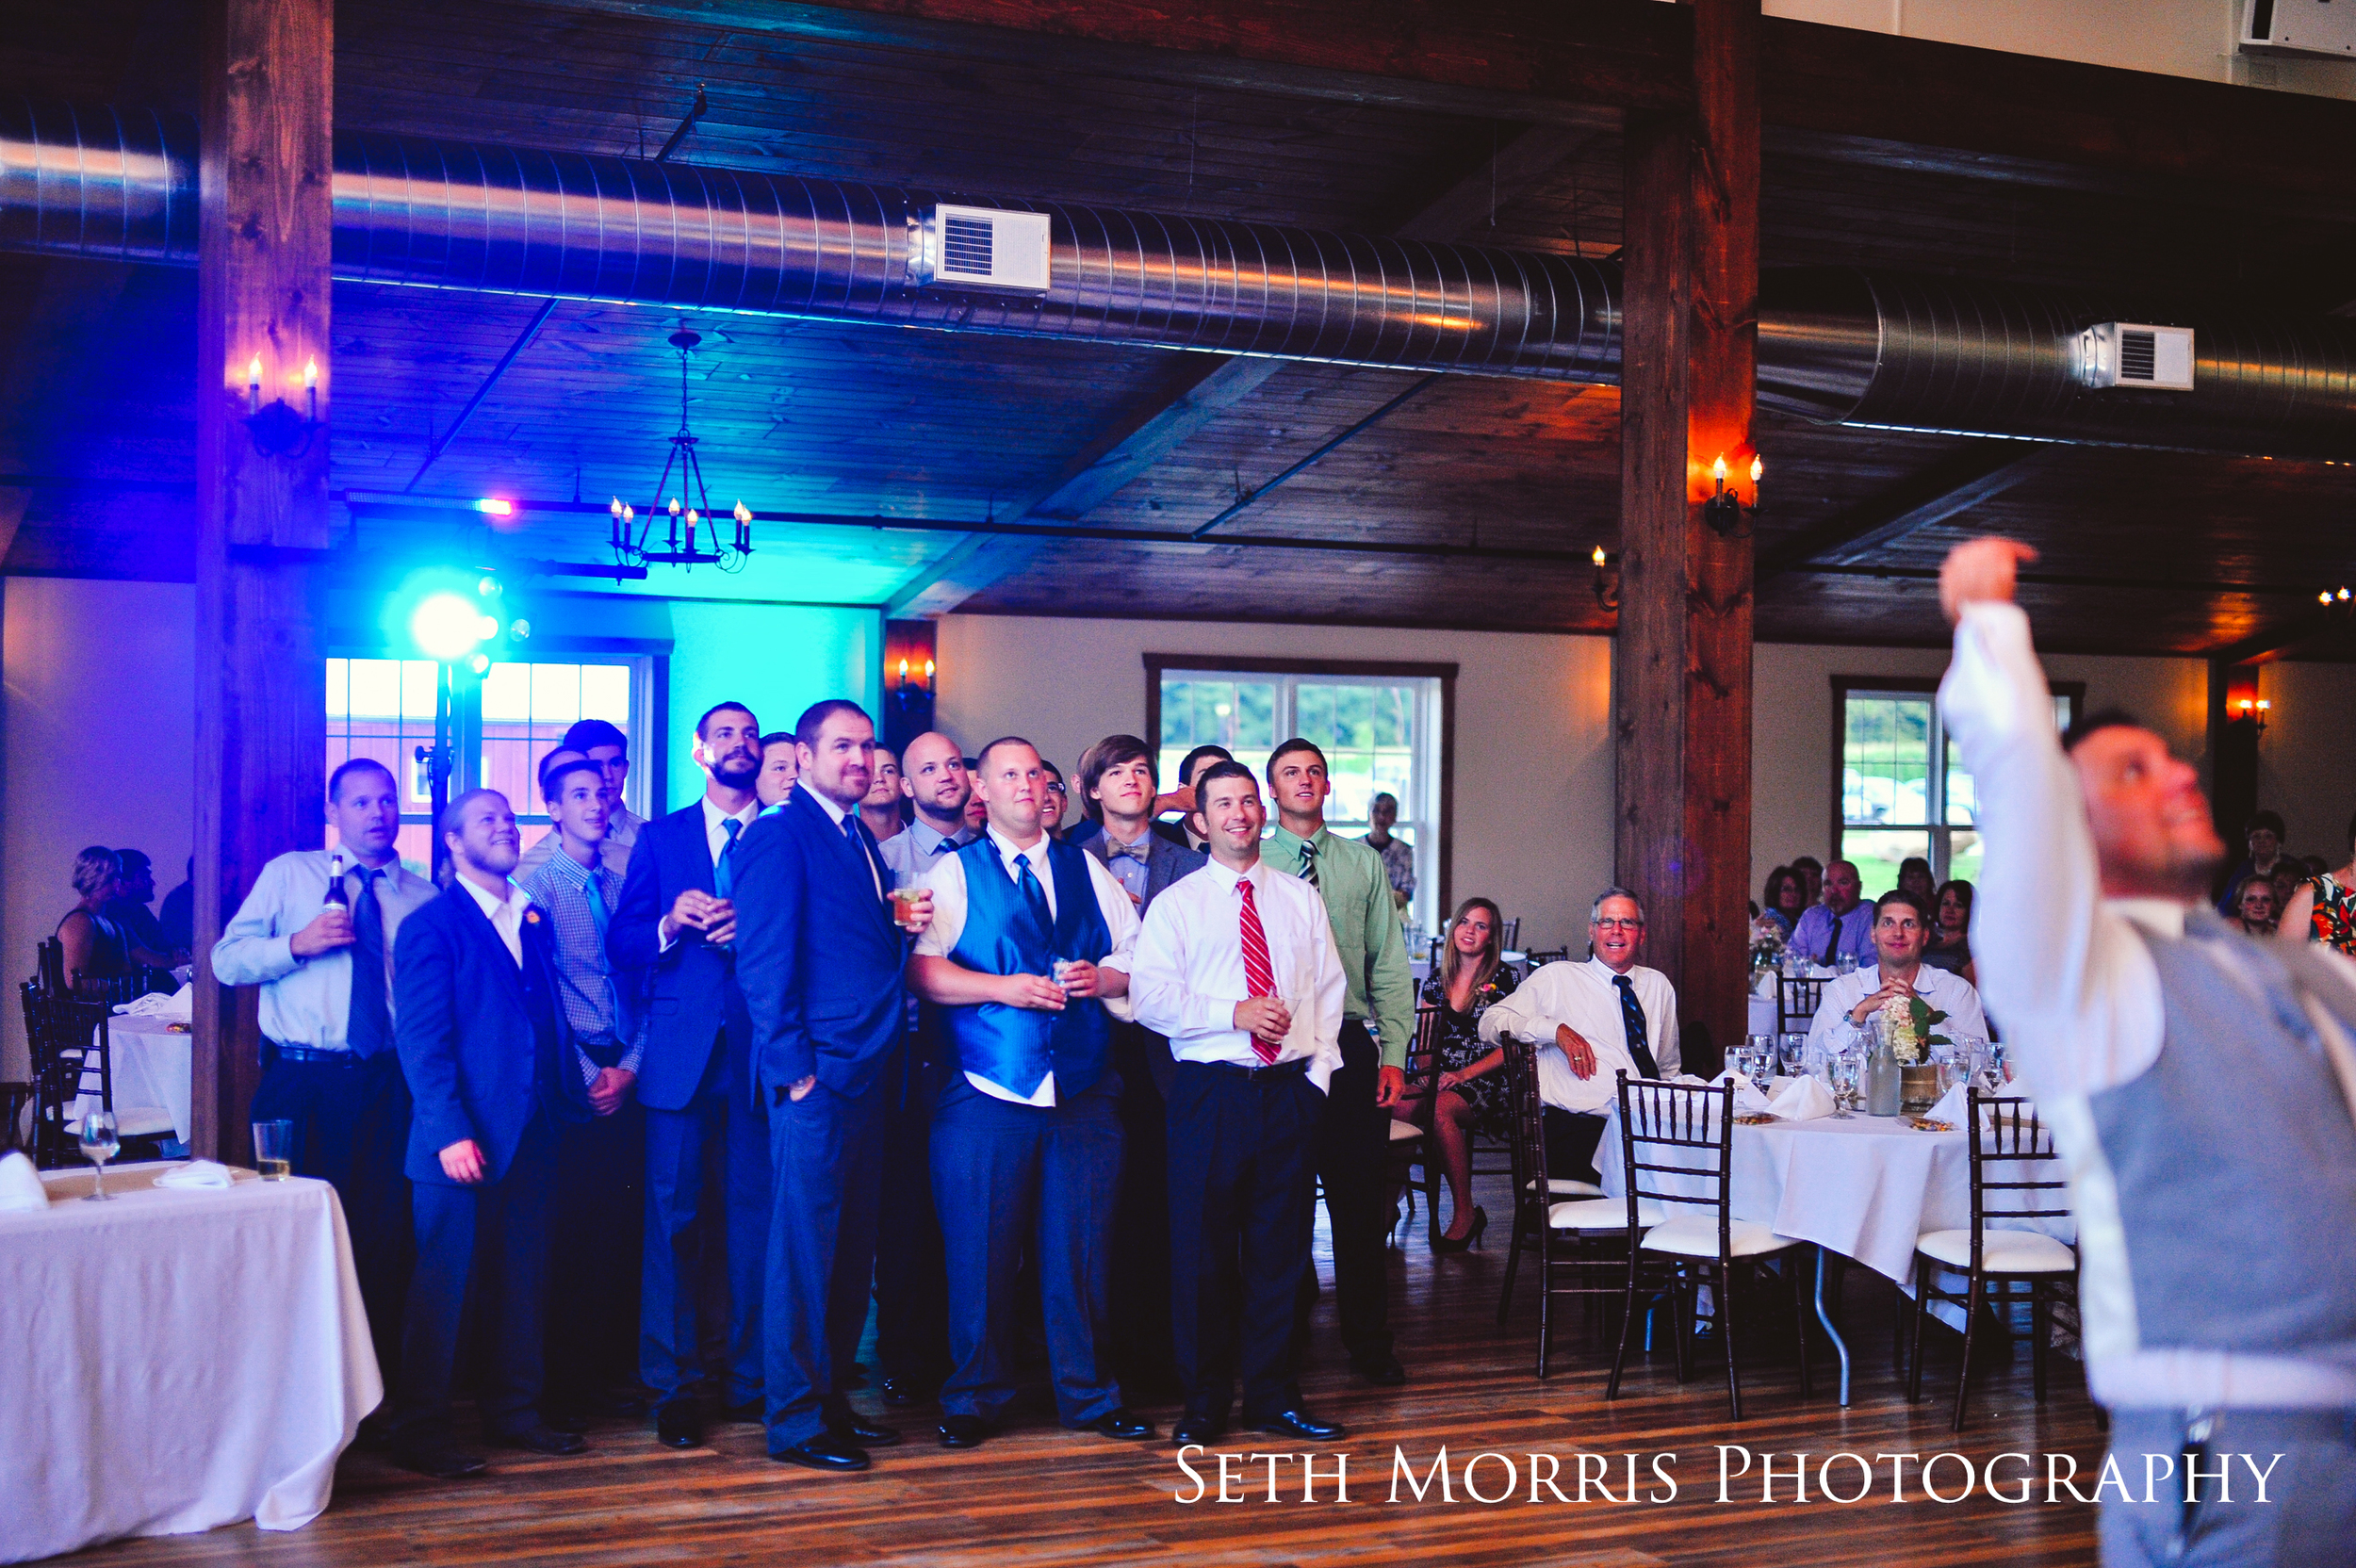 hornbaker-barn-wedding-photo-princeton-photographer-87.jpg